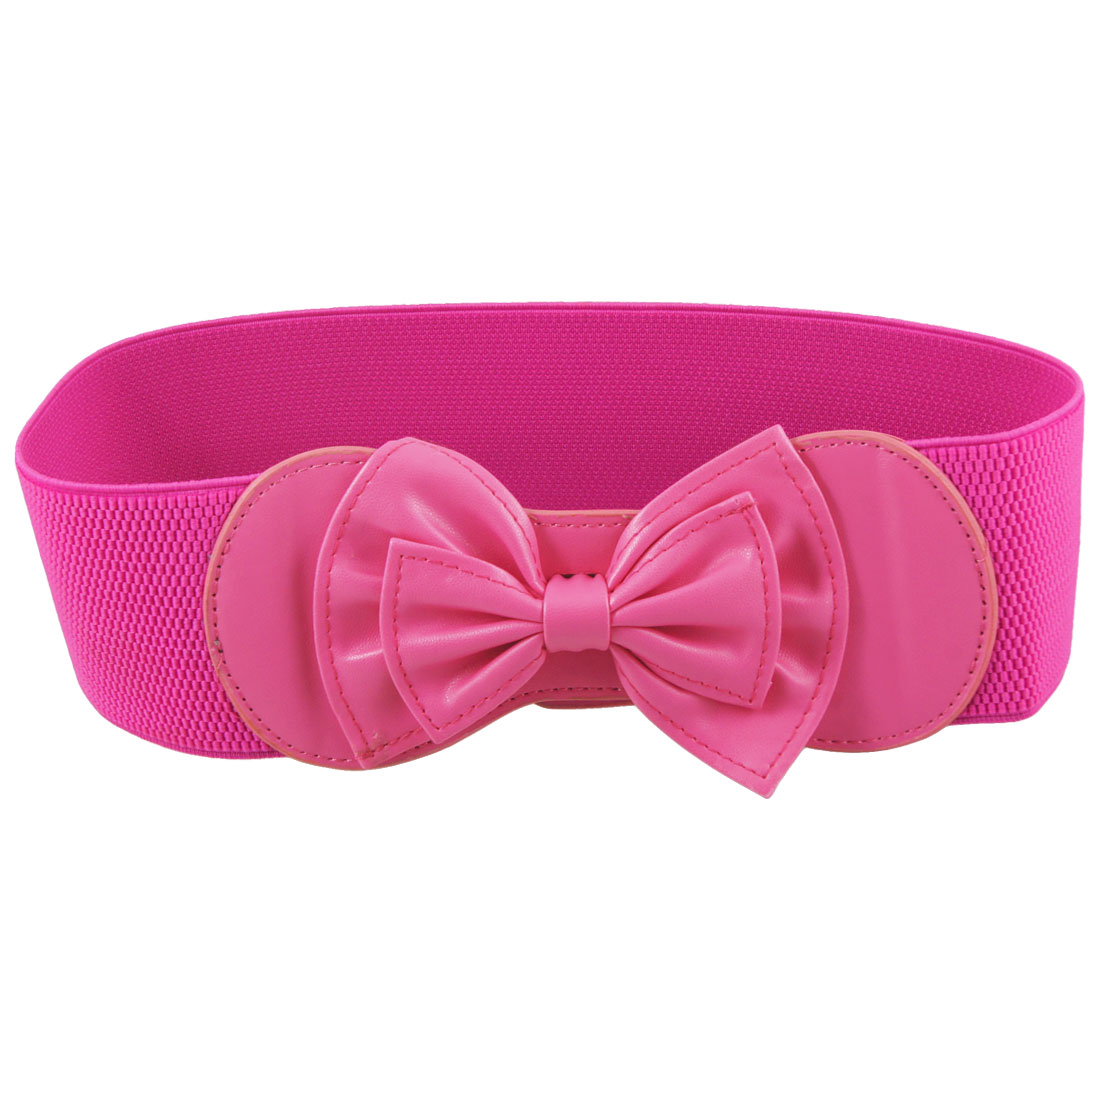 Lady Bowknot Shaped Faux Leather Hook Buckle Elastic Waistband Belt Fuchsia